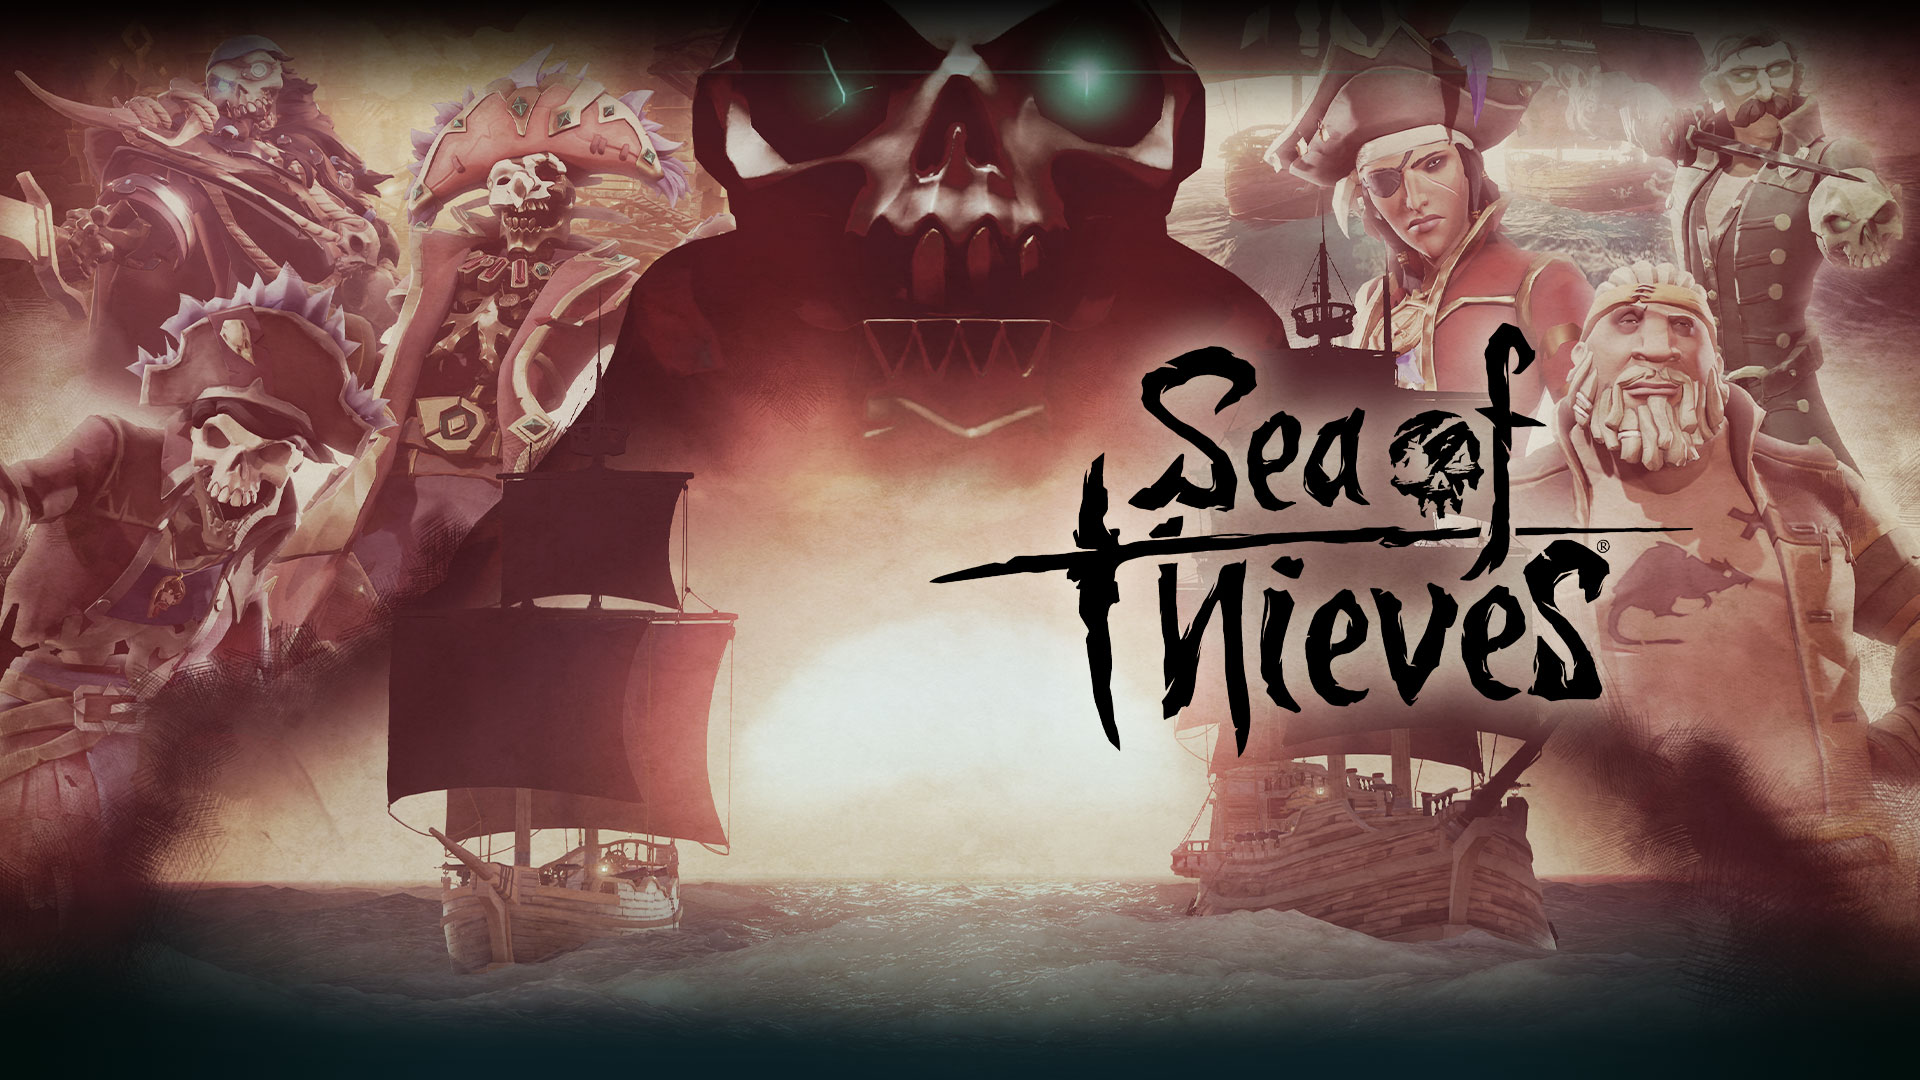 Sea of Thieves, a large skull hangs over two boats, character collage in background.